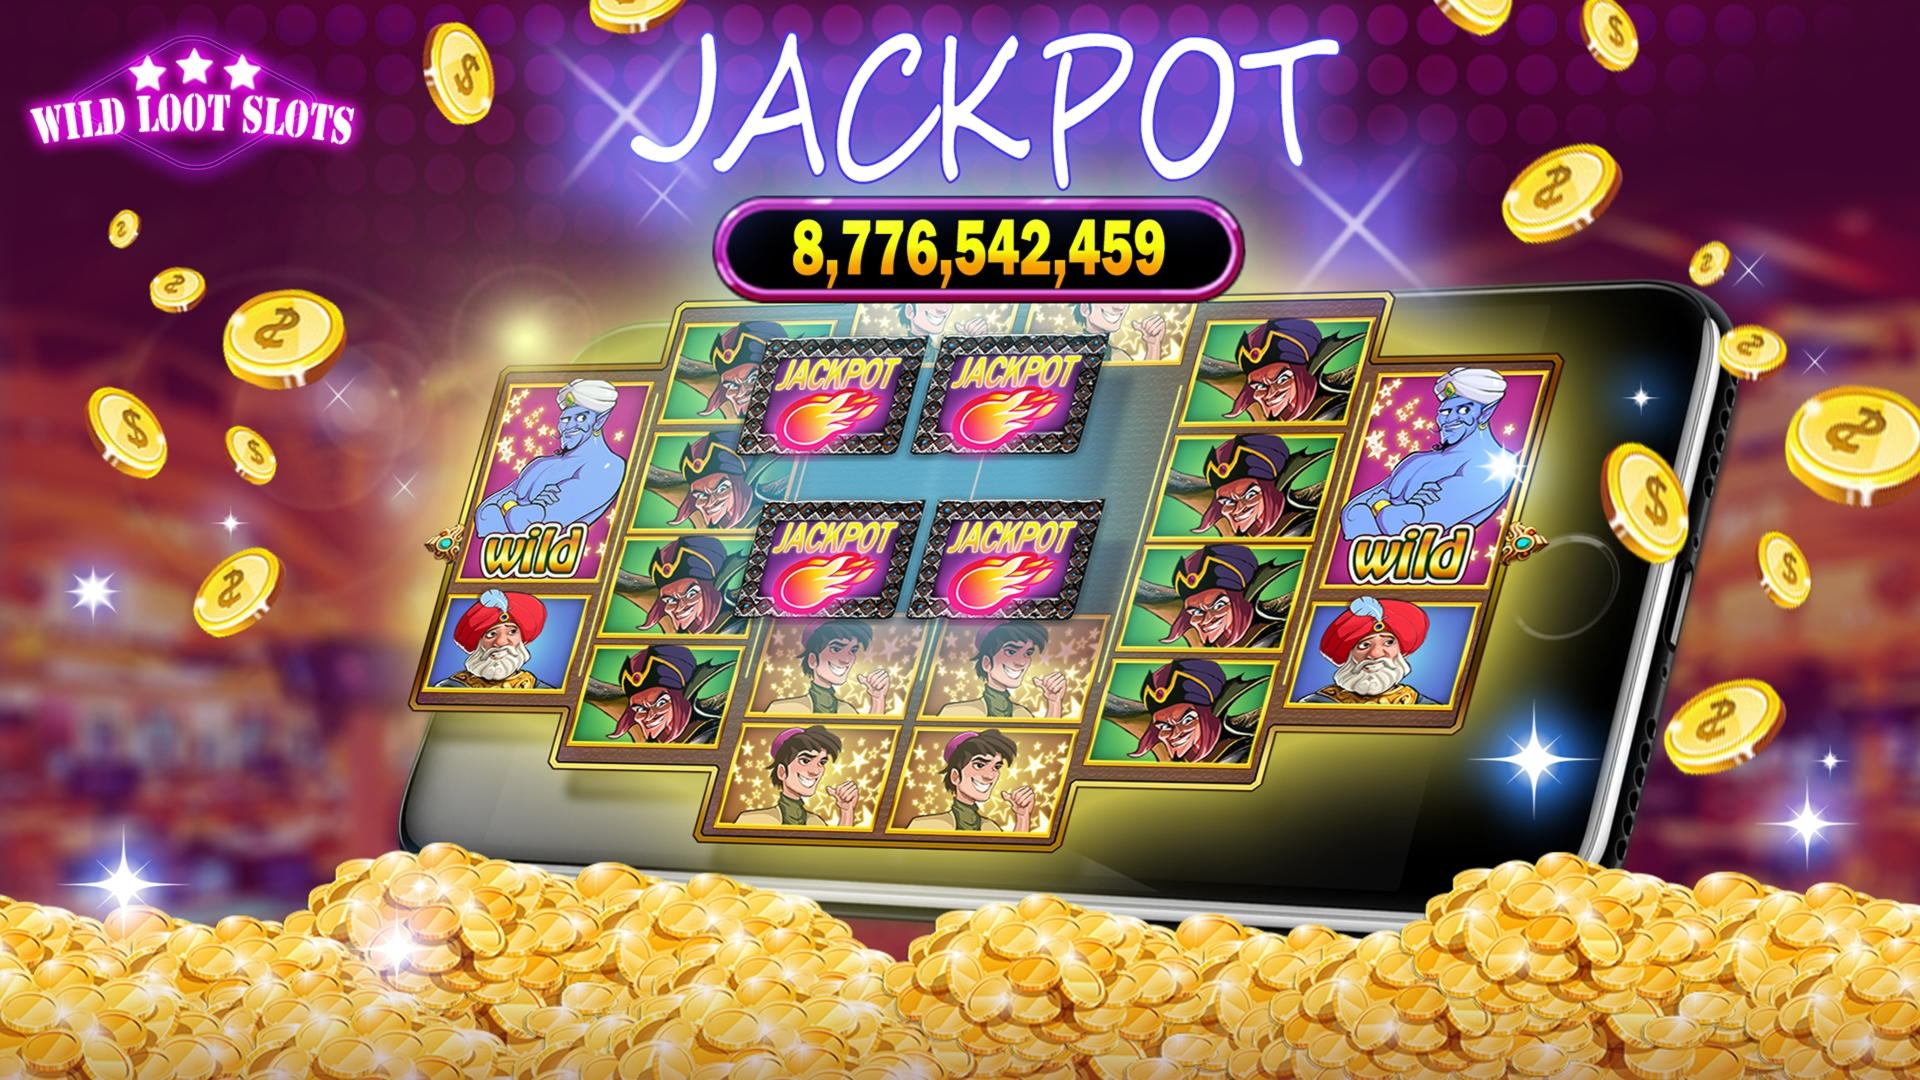 235 free spins casino at Casino Action